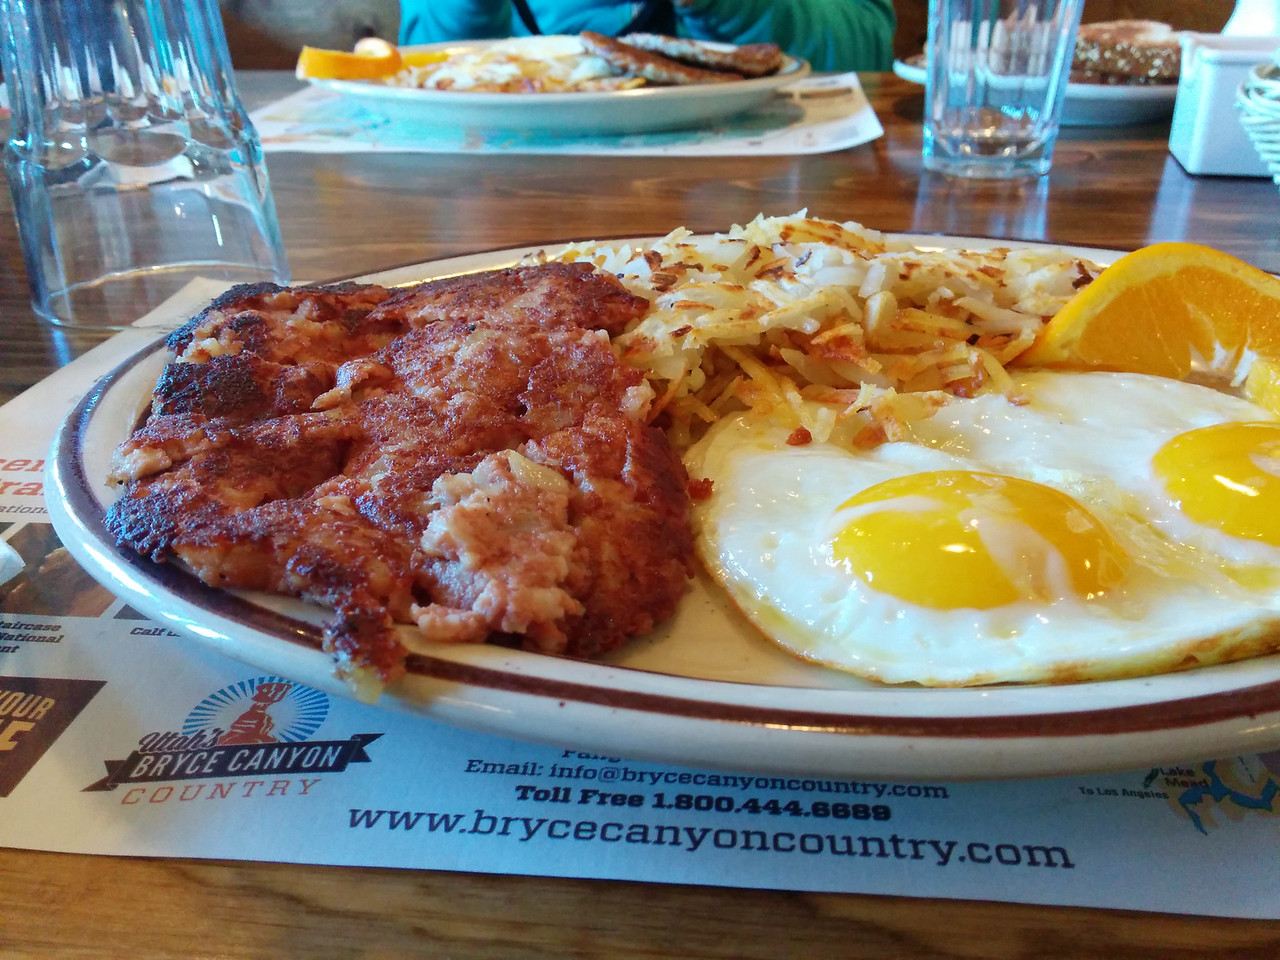 Stopping by Bryce Canyon Pines Restaurant for a solid breakfast.  Corned beef hash was amazing.